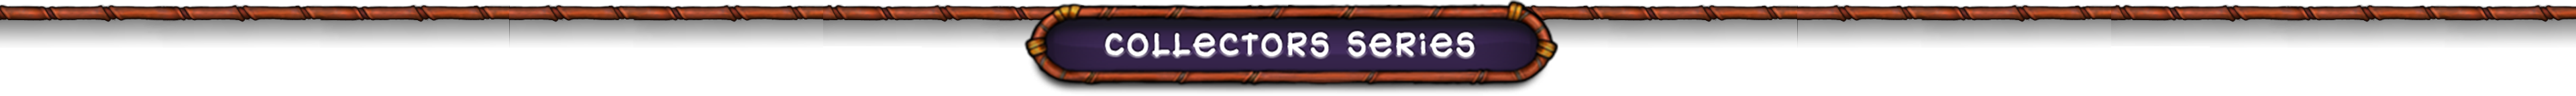 CollectorsSeriesBanner